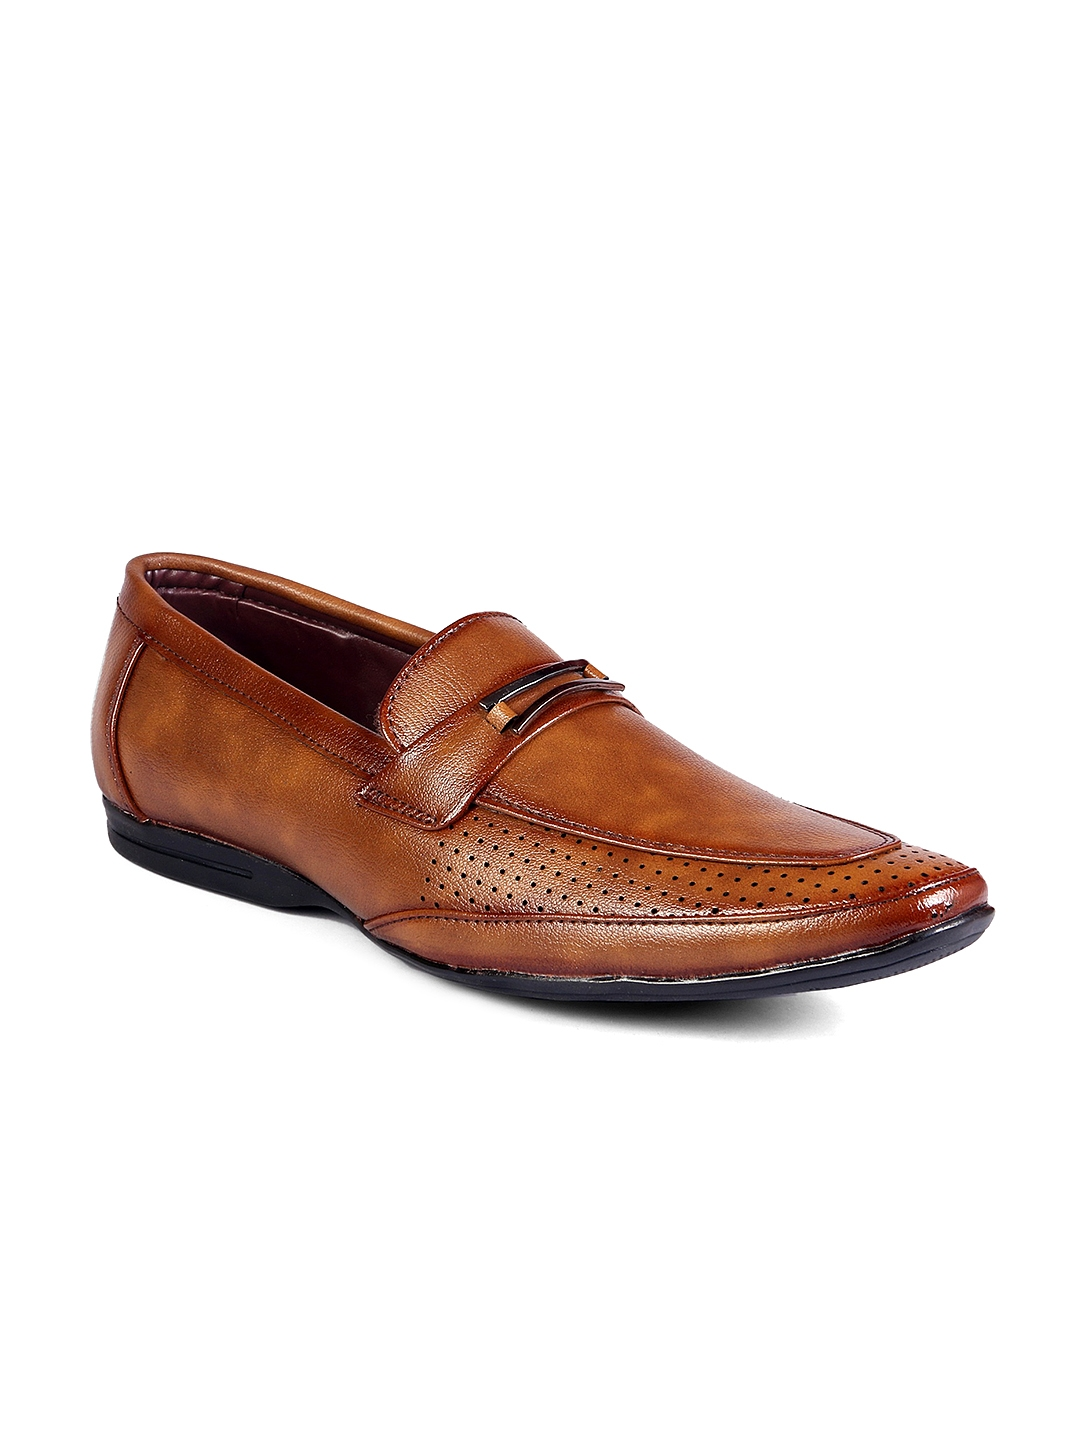 Find great deals on eBay for indian shoes men. Shop with confidence. Skip to main content. eBay: From India. Free Shipping. Free Returns. New Listing Traditional Leather Loafers Men Shoes Punjabi Indian Handmade Jutti Fiat US Brand New. $